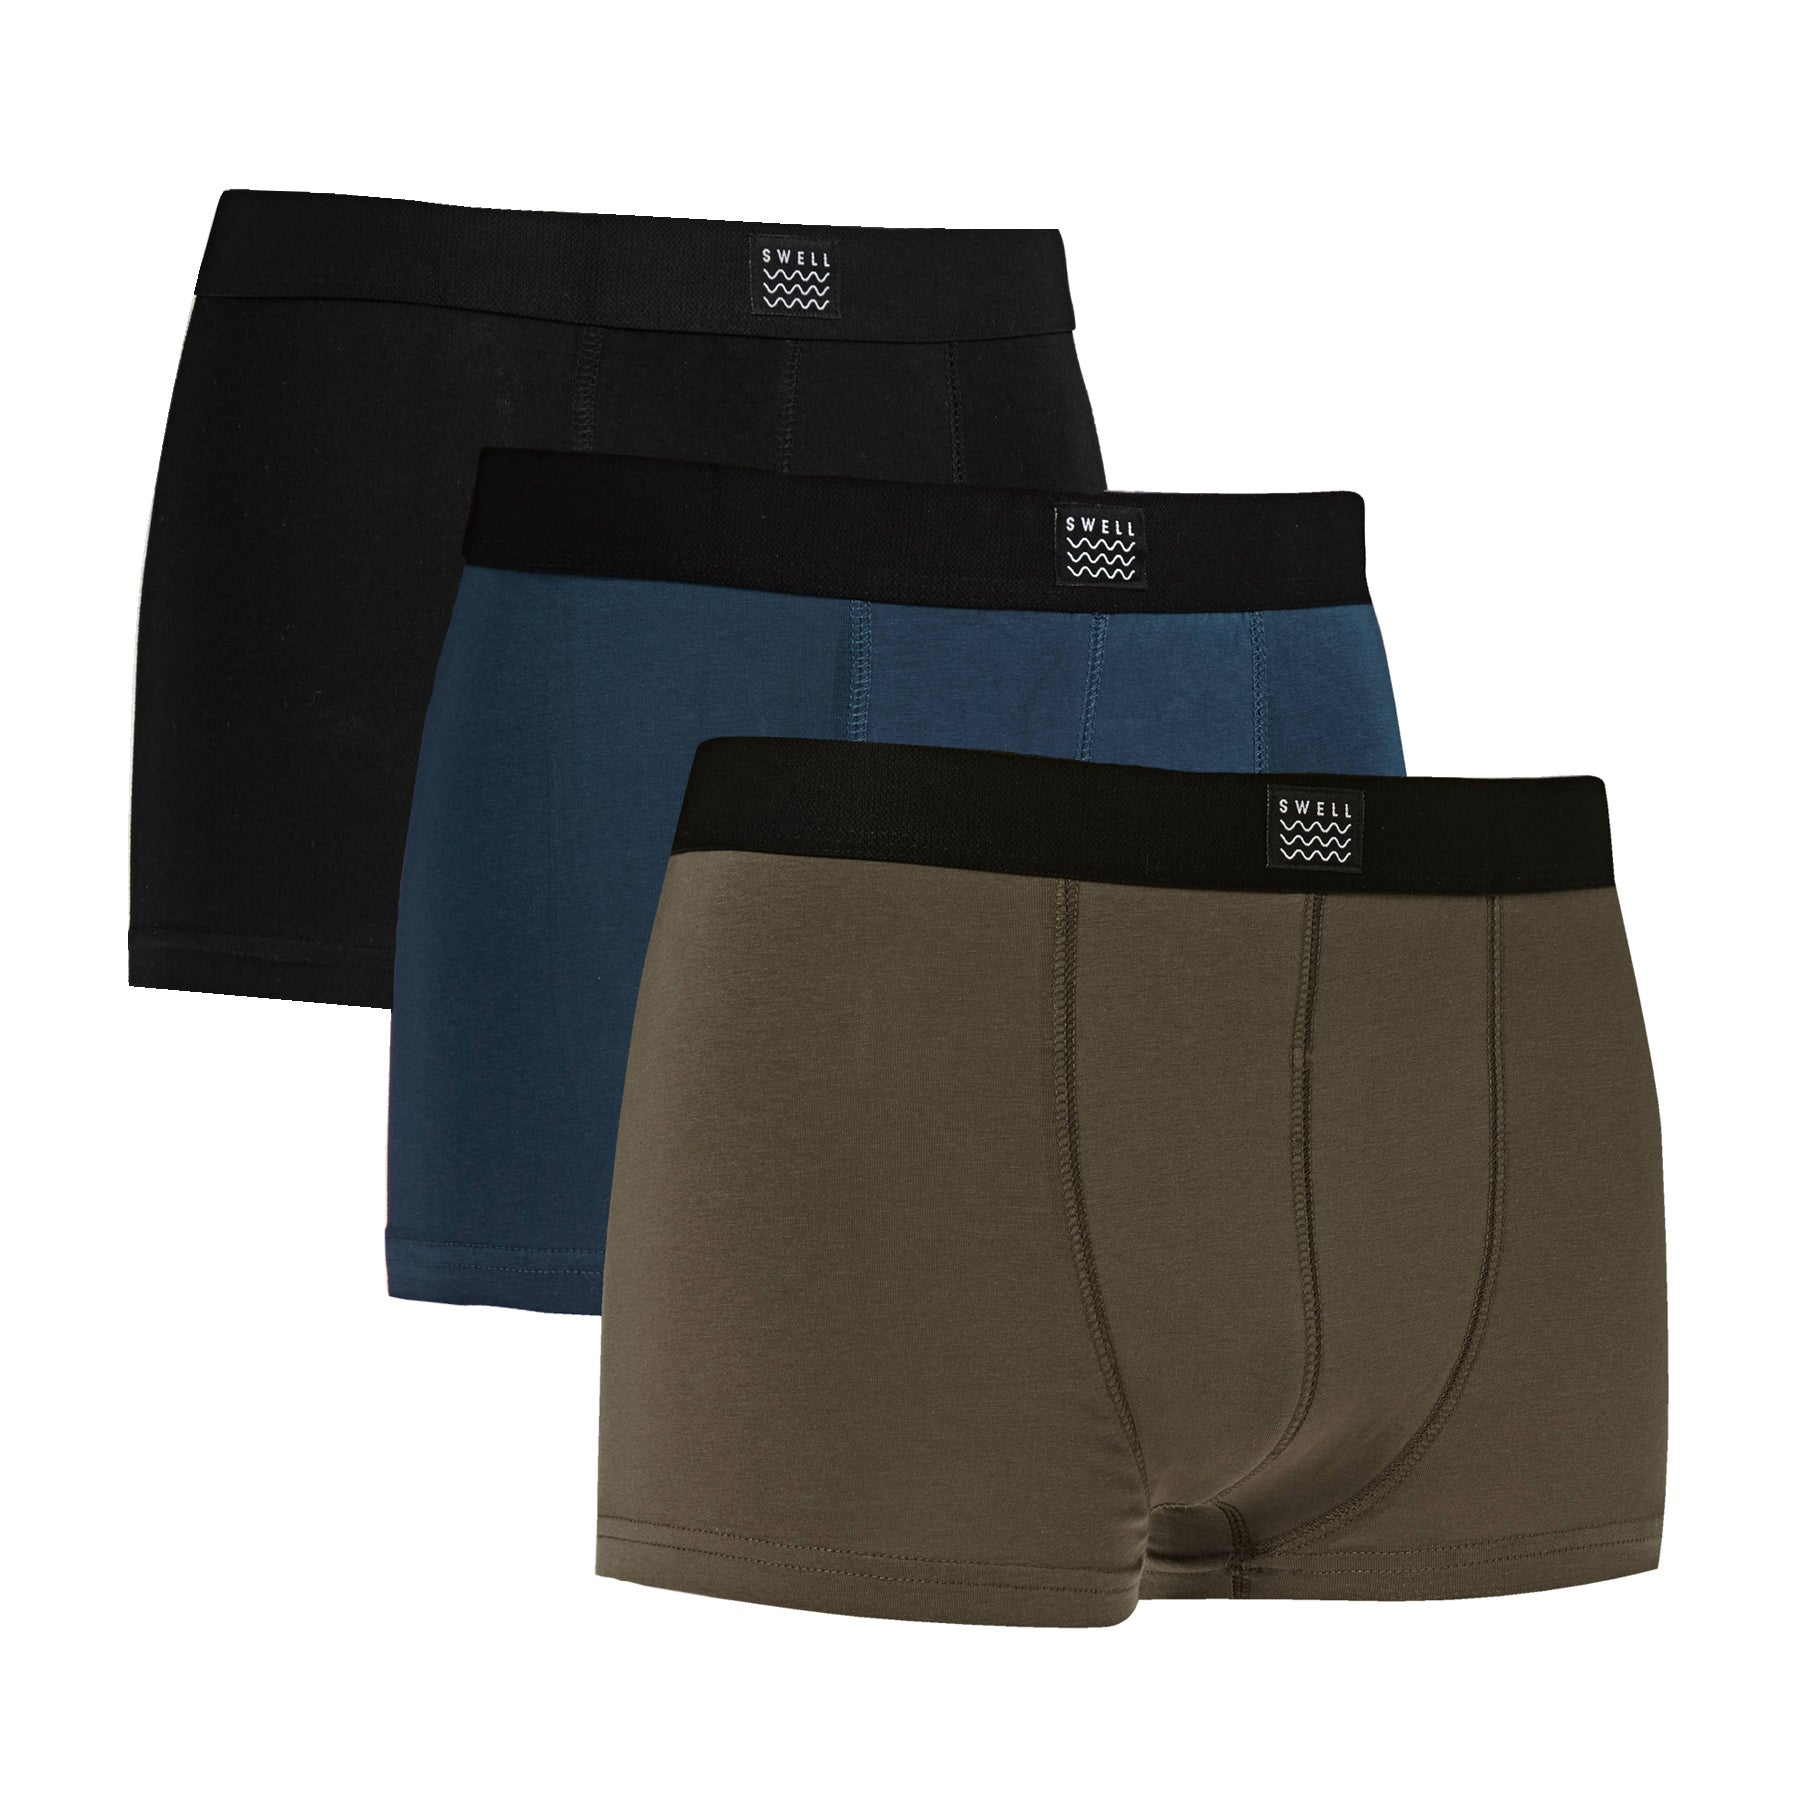 SWELL 3 Pack Boxer Shorts - Black Navy Military